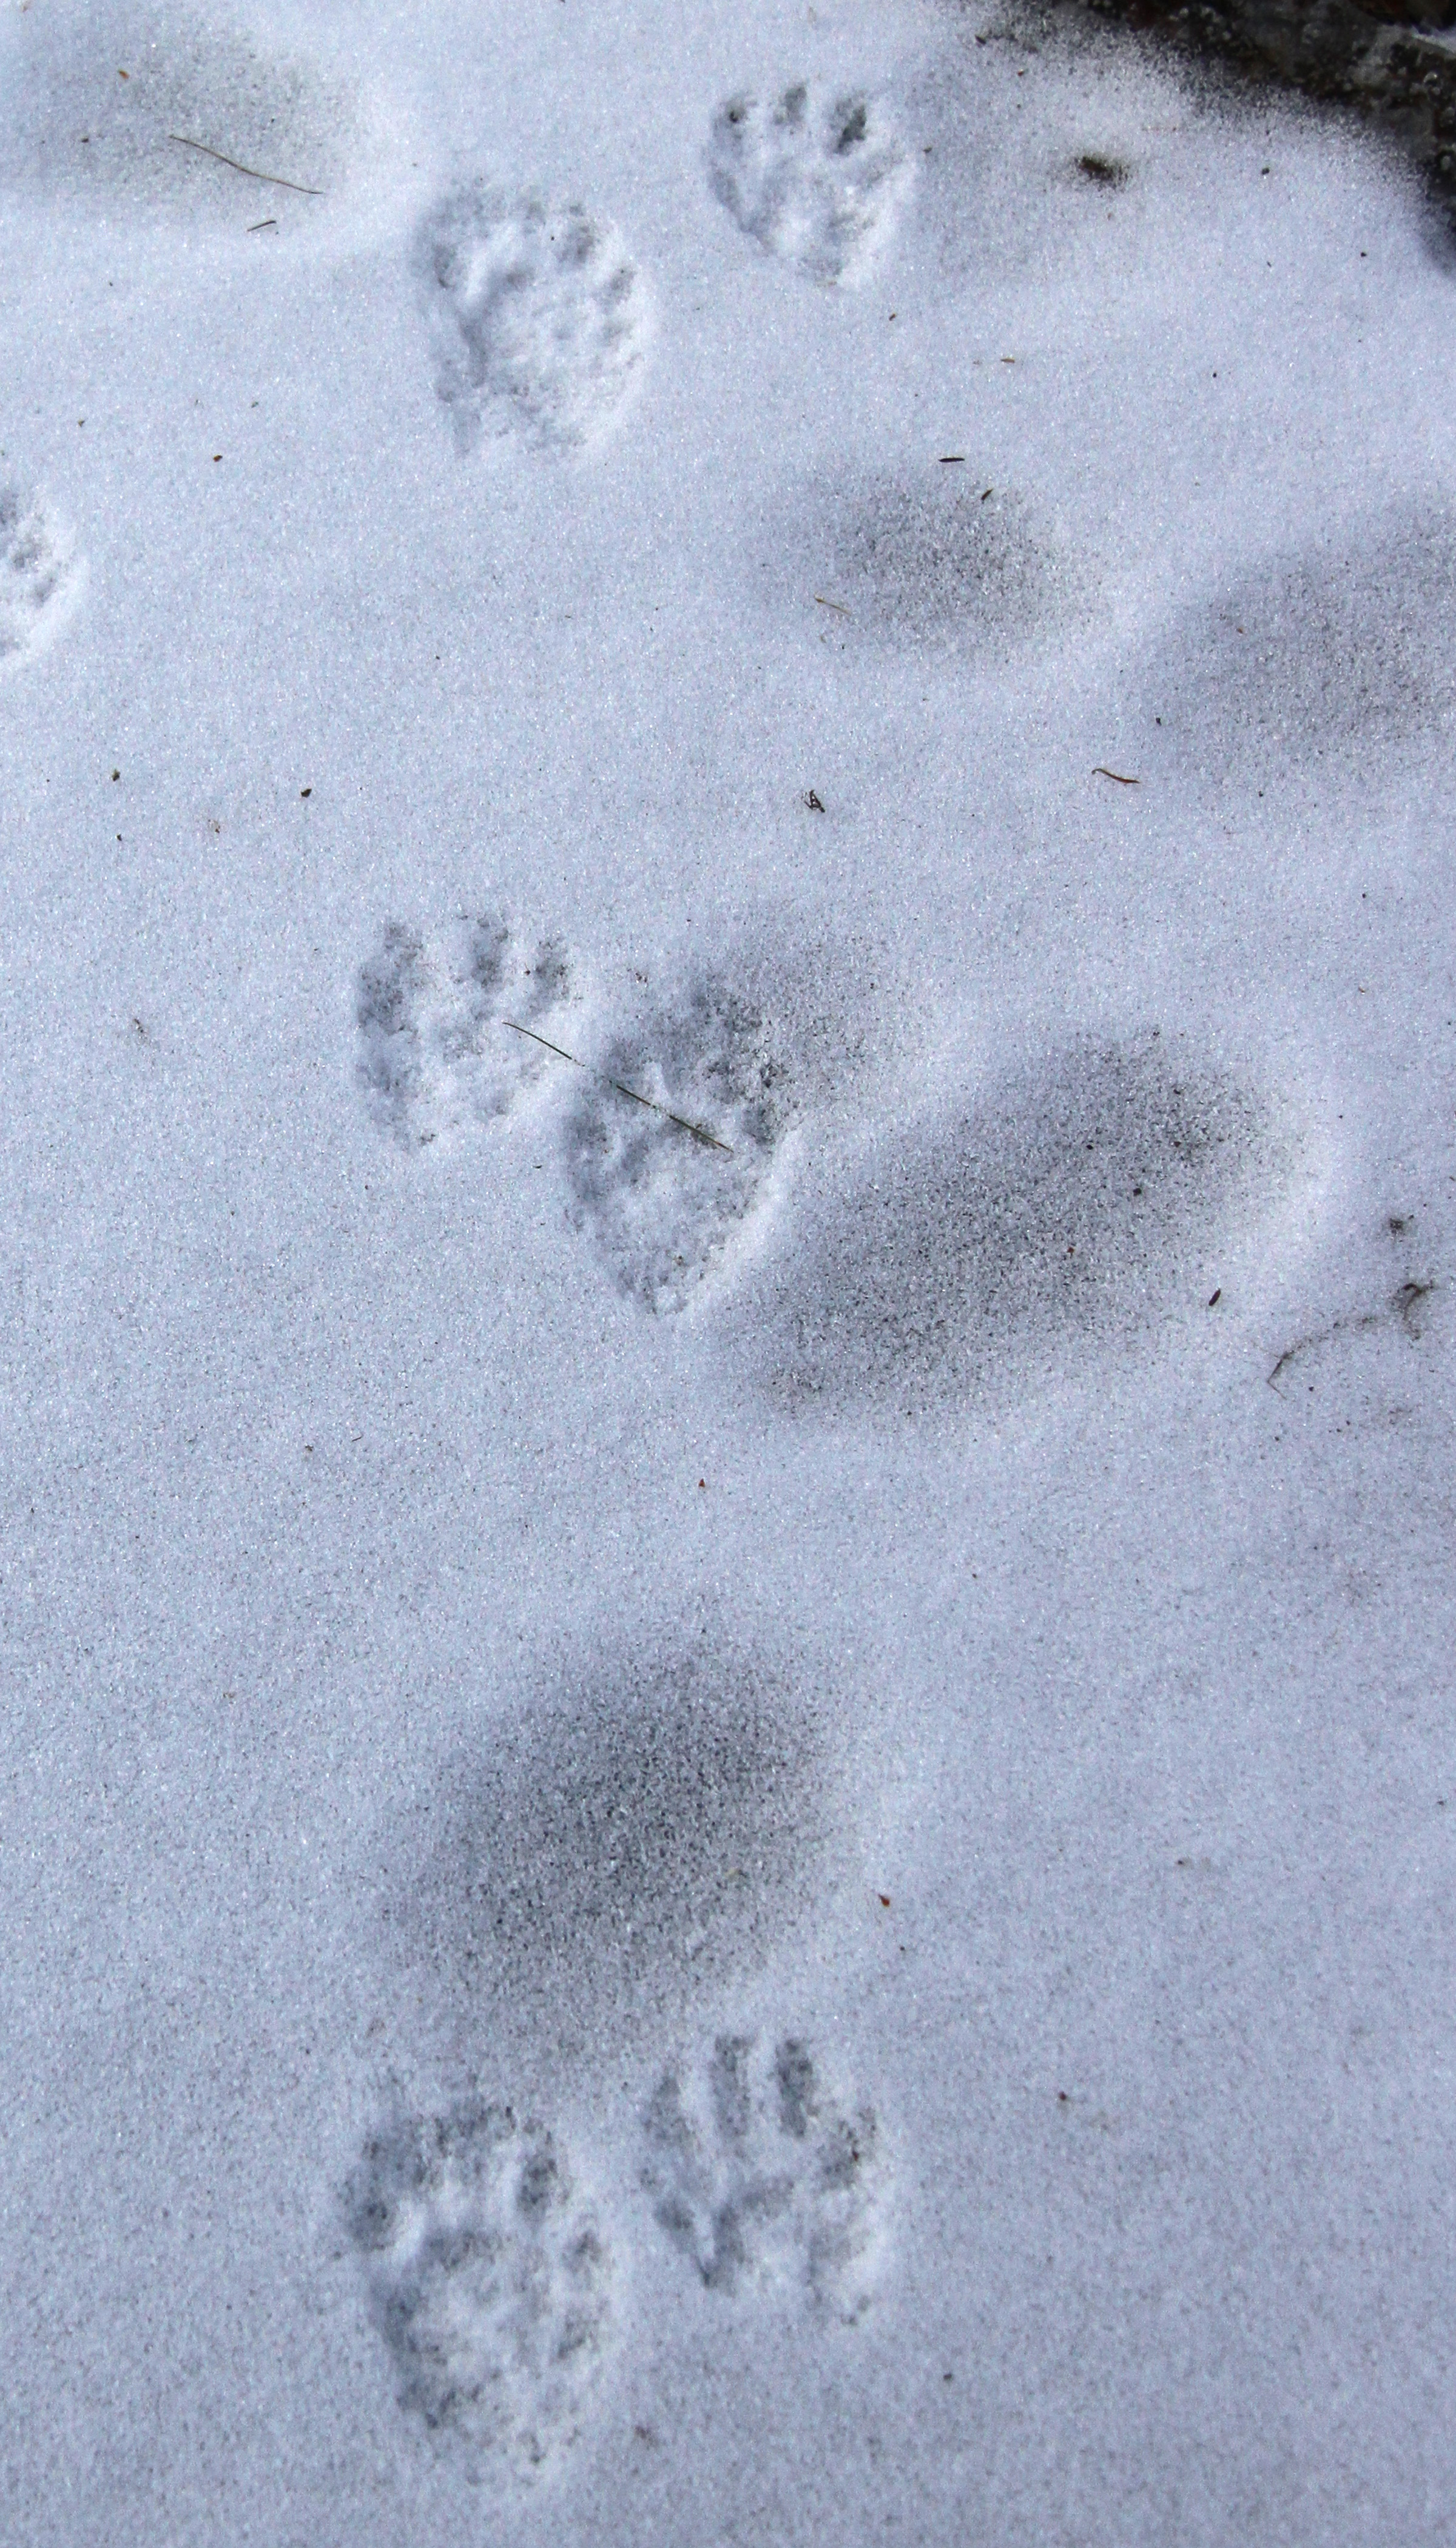 Skunk and Raccoon Footprints http://naturallycuriouswithmaryholland.wordpress.com/2010/02/14/